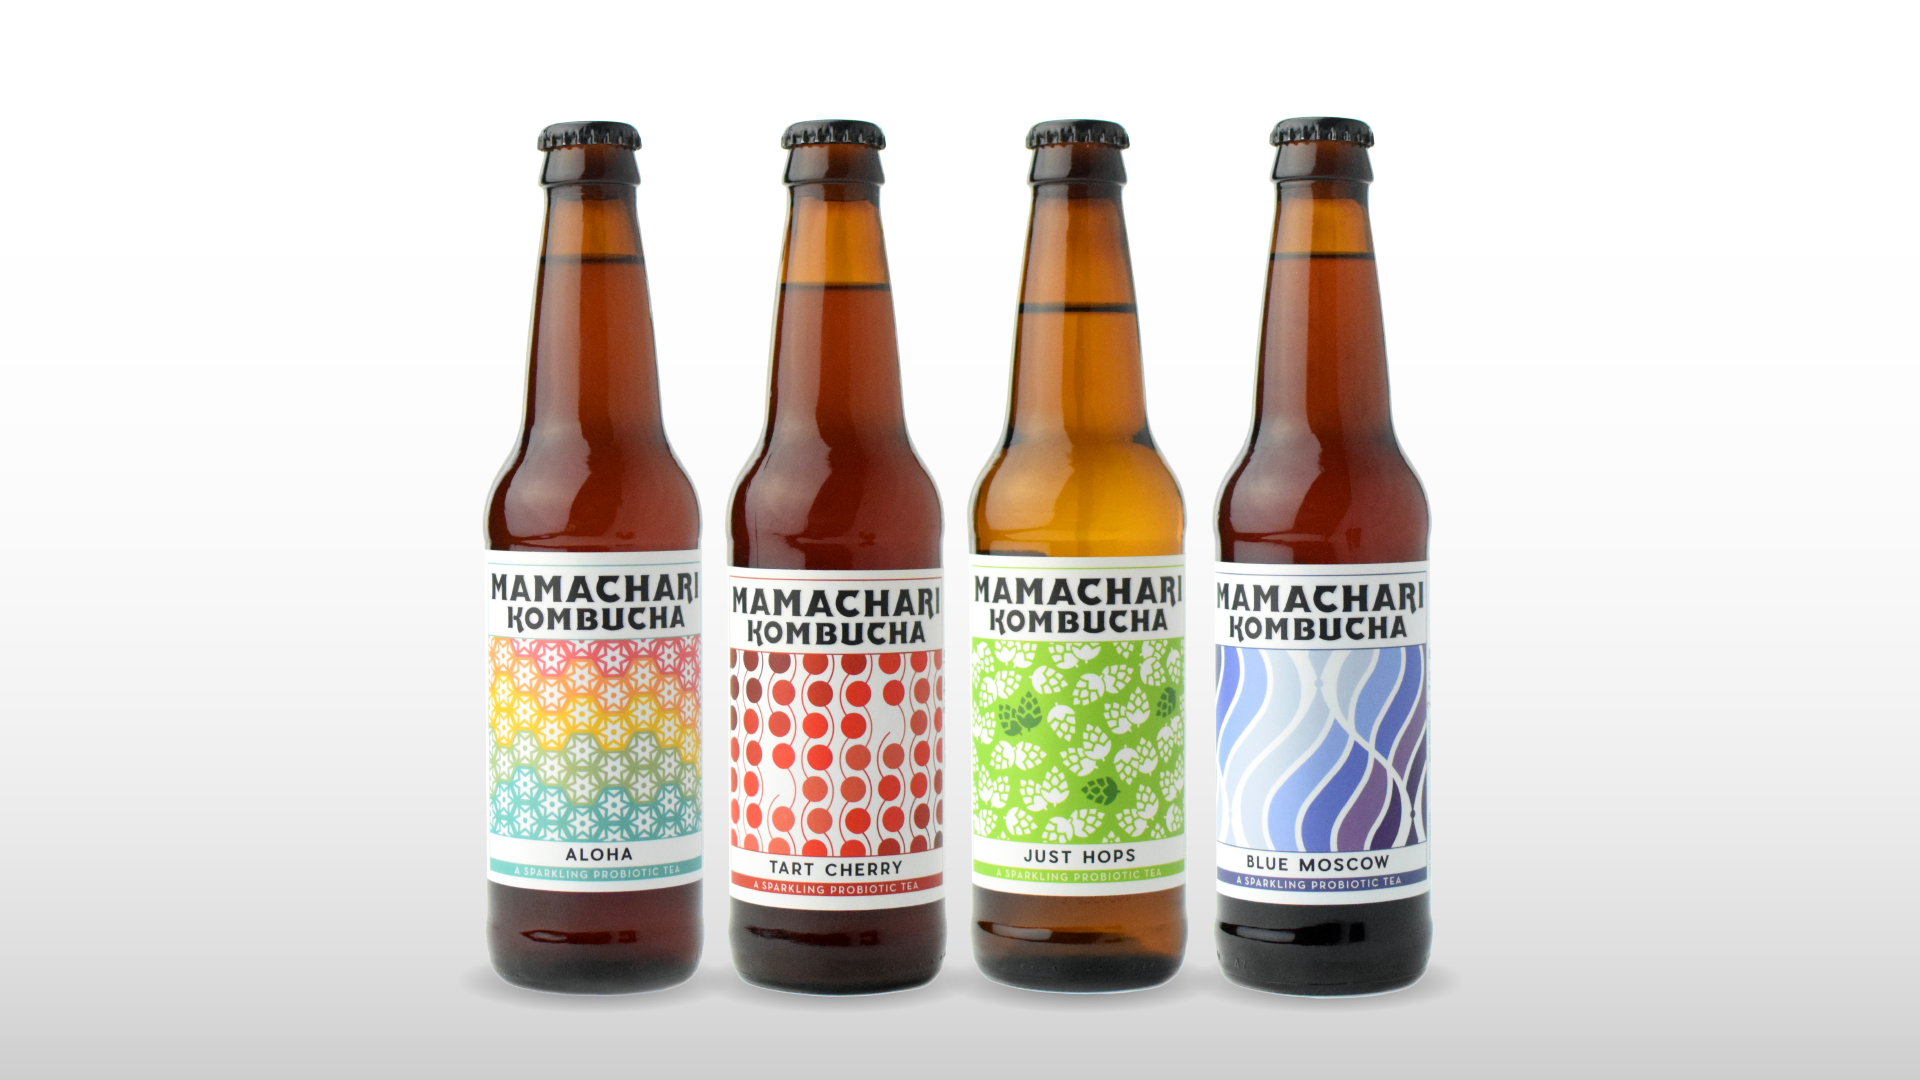 Mamachari New Bottles